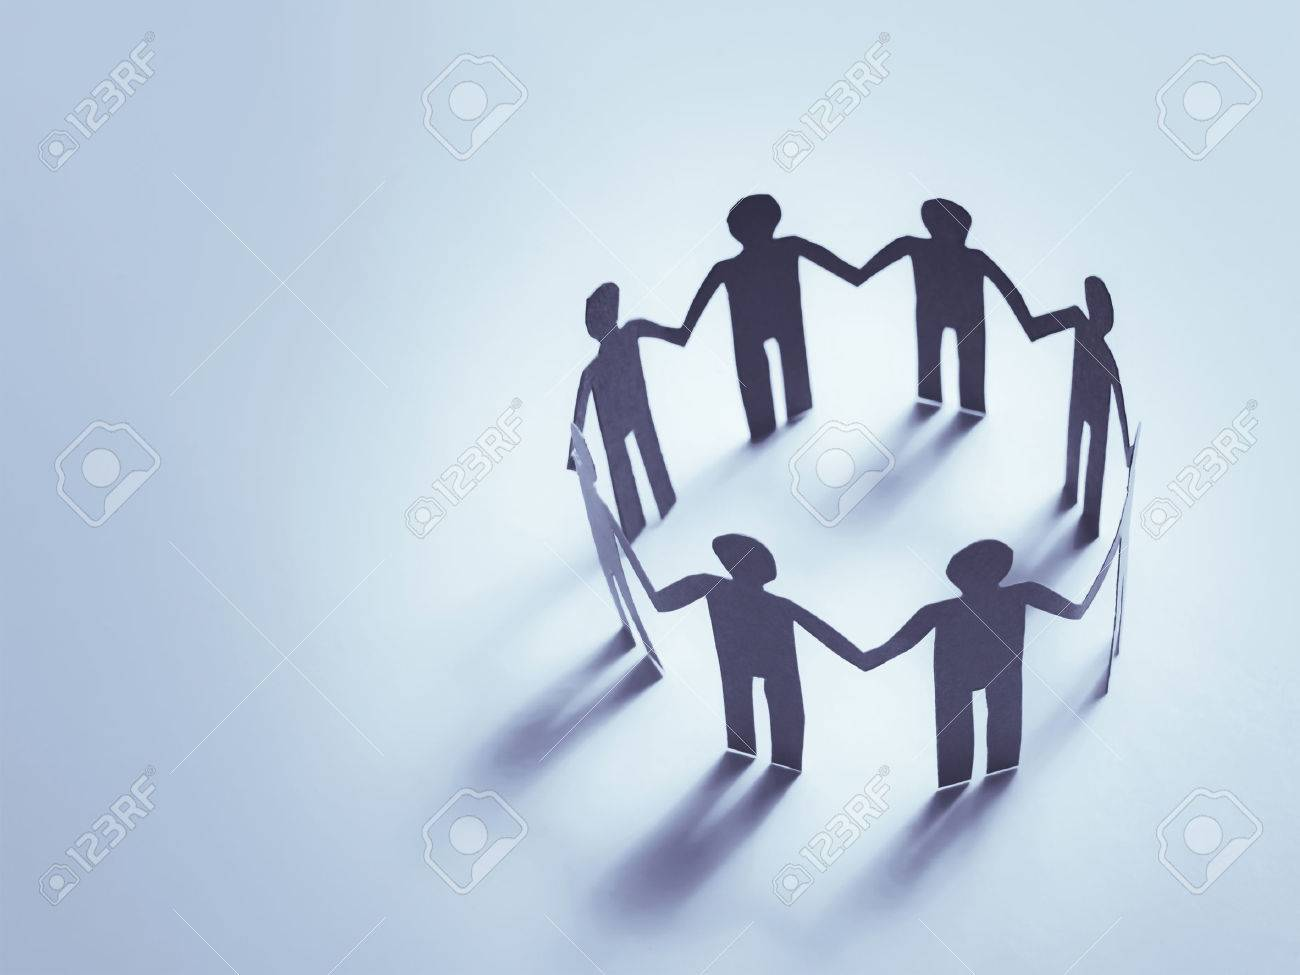 unity of paper human team work - 53803464